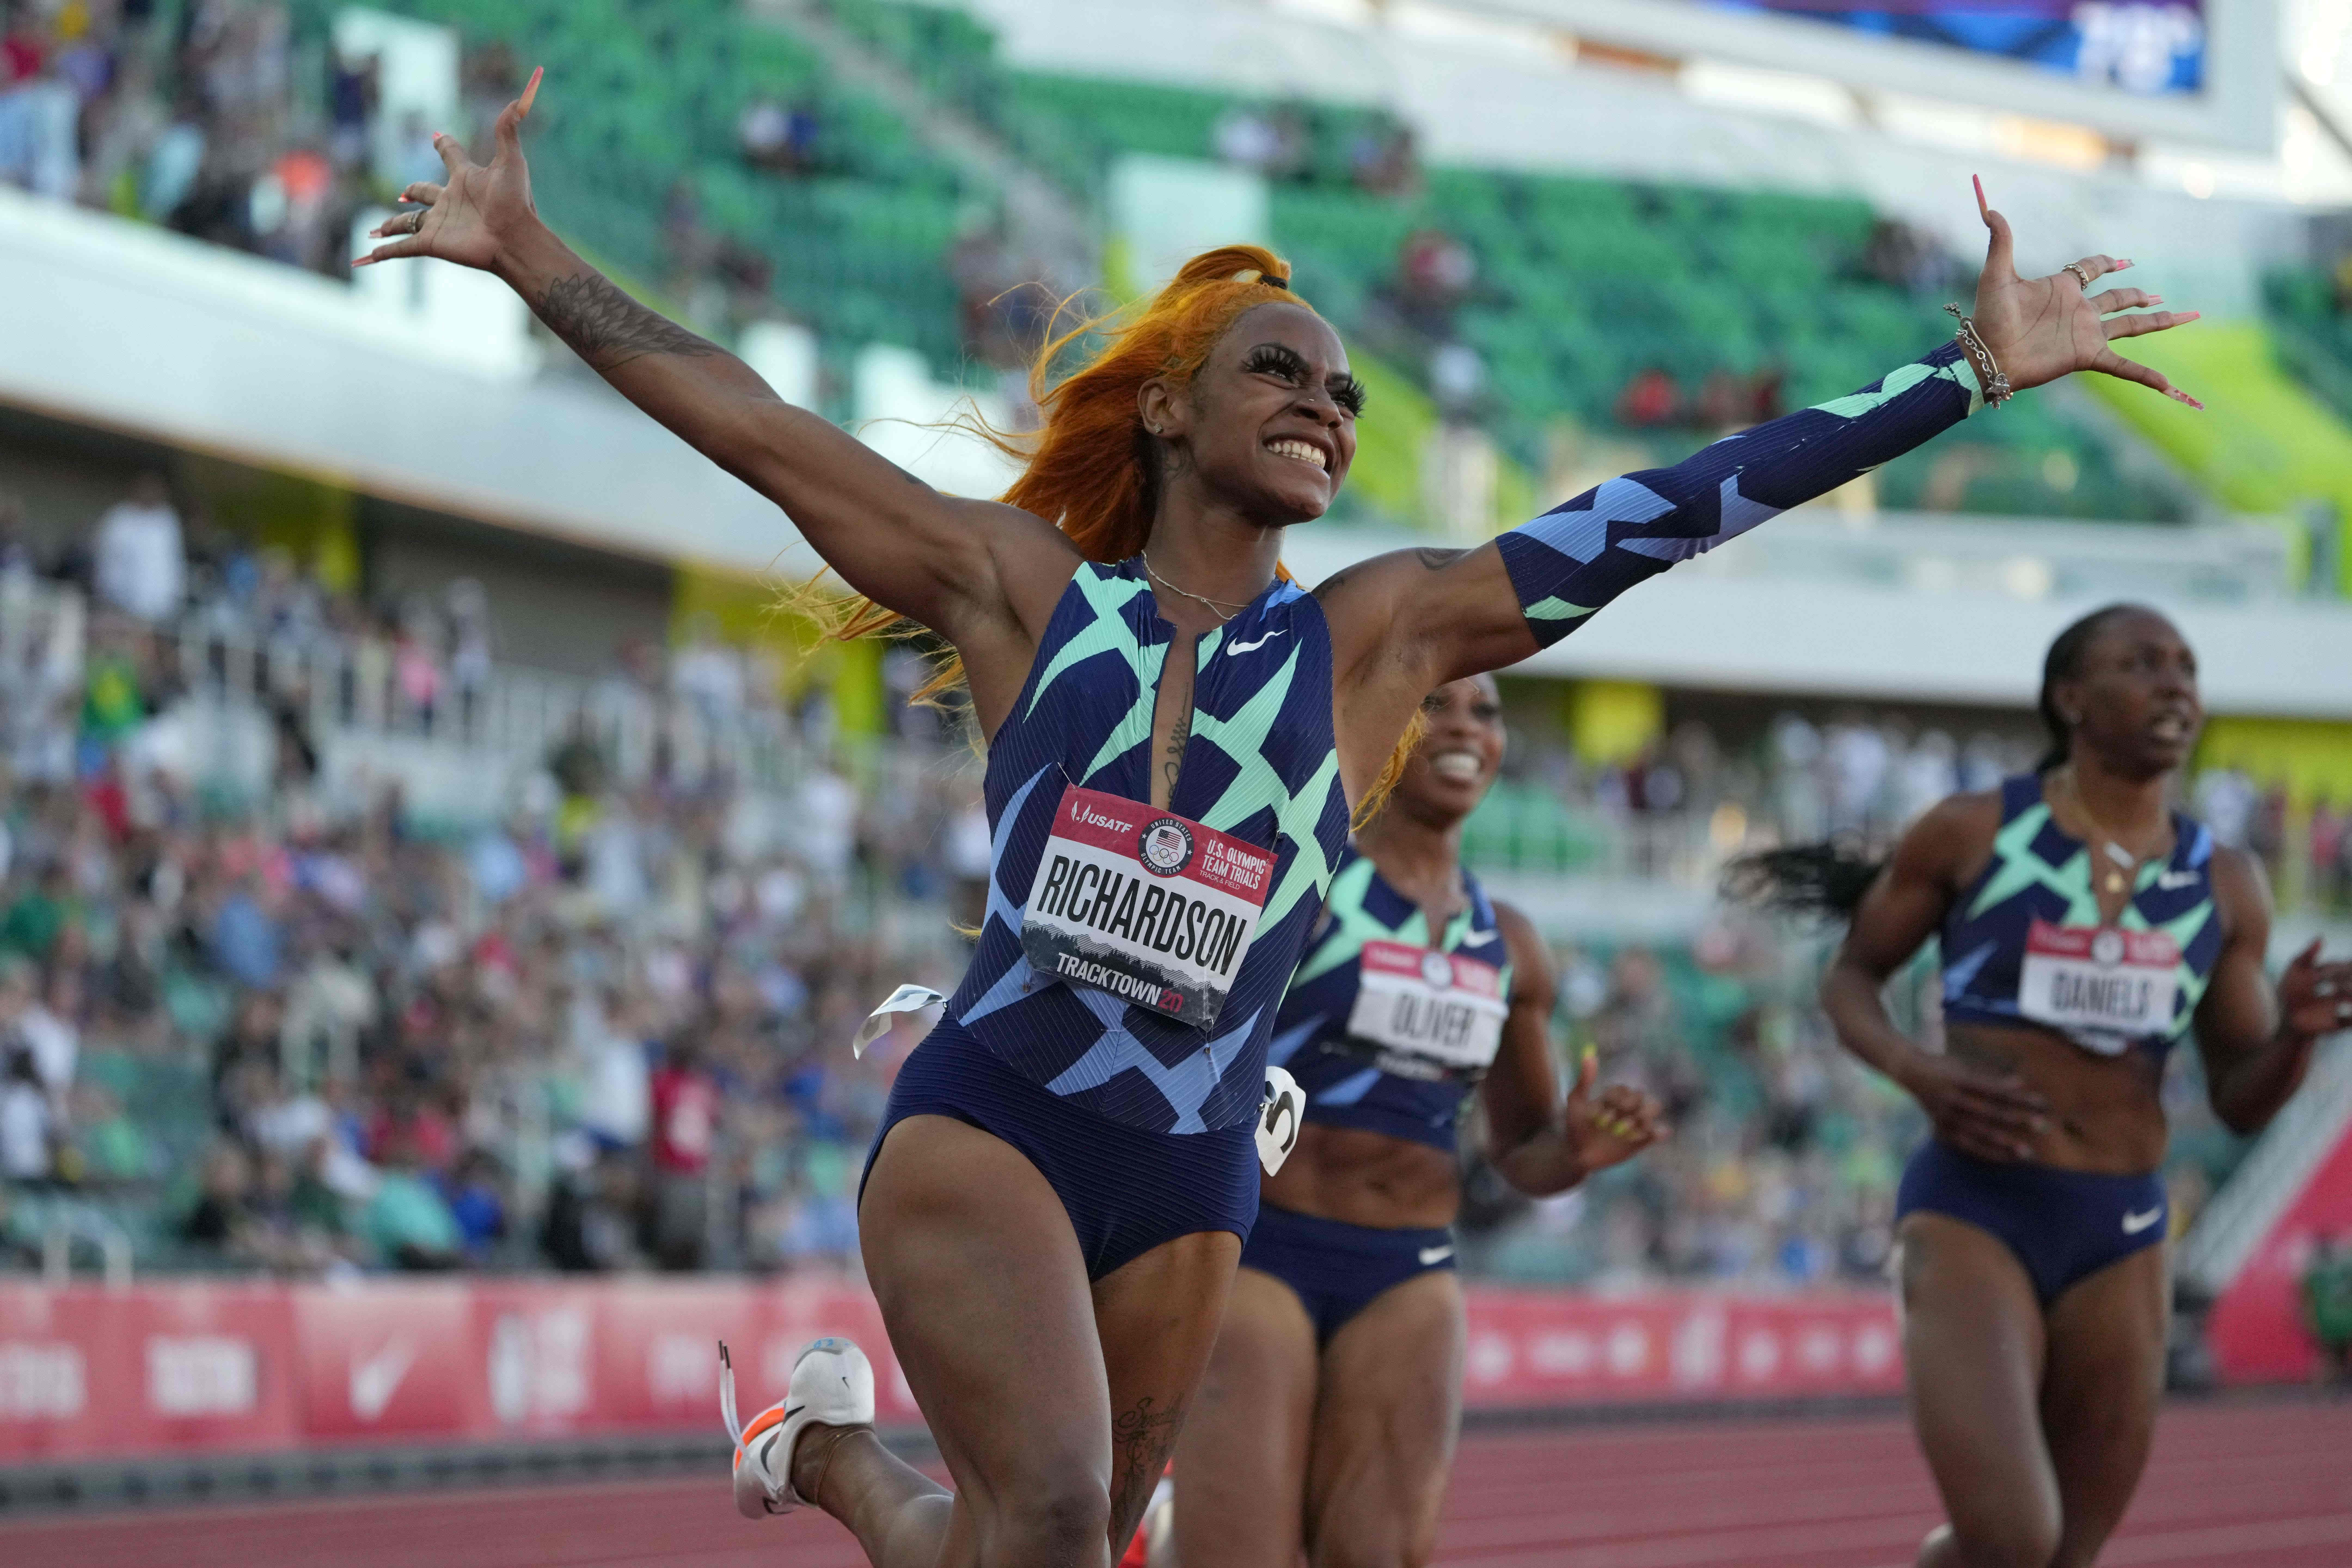 Jun 19, 2021; Eugene, OR, USA; Sha'Carri Richardson celebrates after winning the women's 100m in 10.86 during the US Olympic Team Trials at Hayward Field. Mandatory Credit: Kirby Lee-USA TODAY Sports